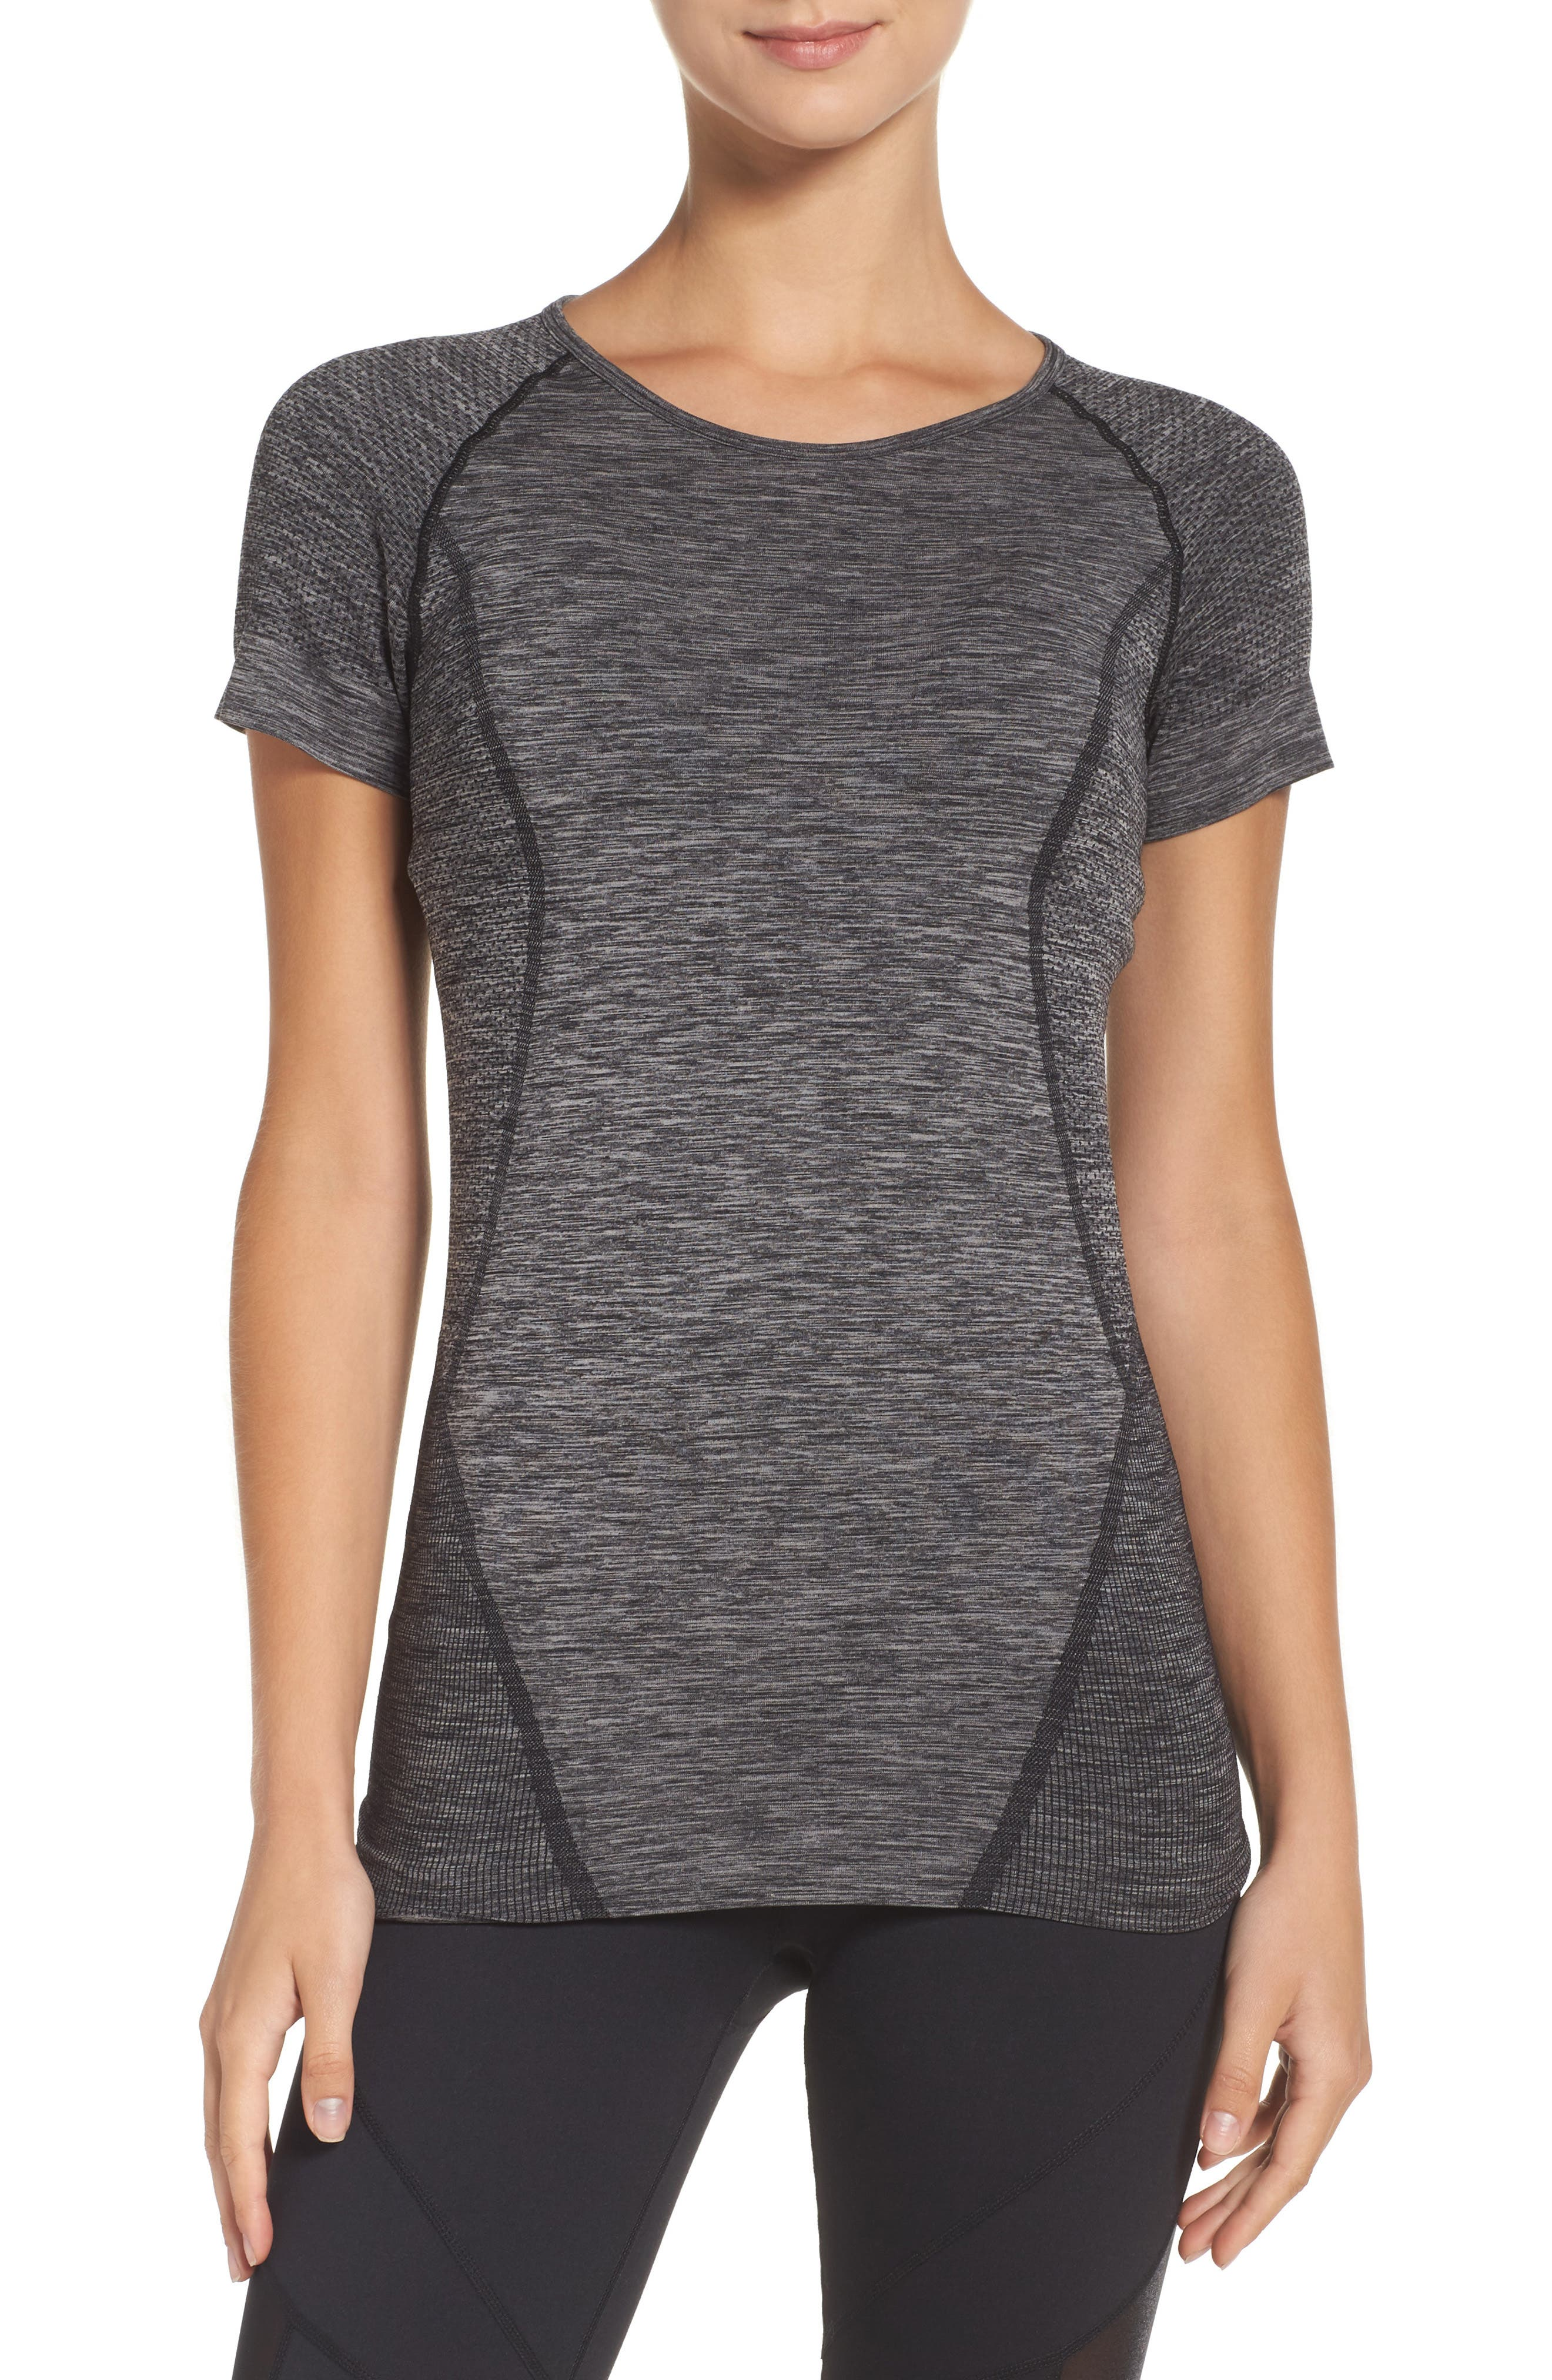 Alternate Image 1 Selected - Zella Stand Out Seamless Training Tee